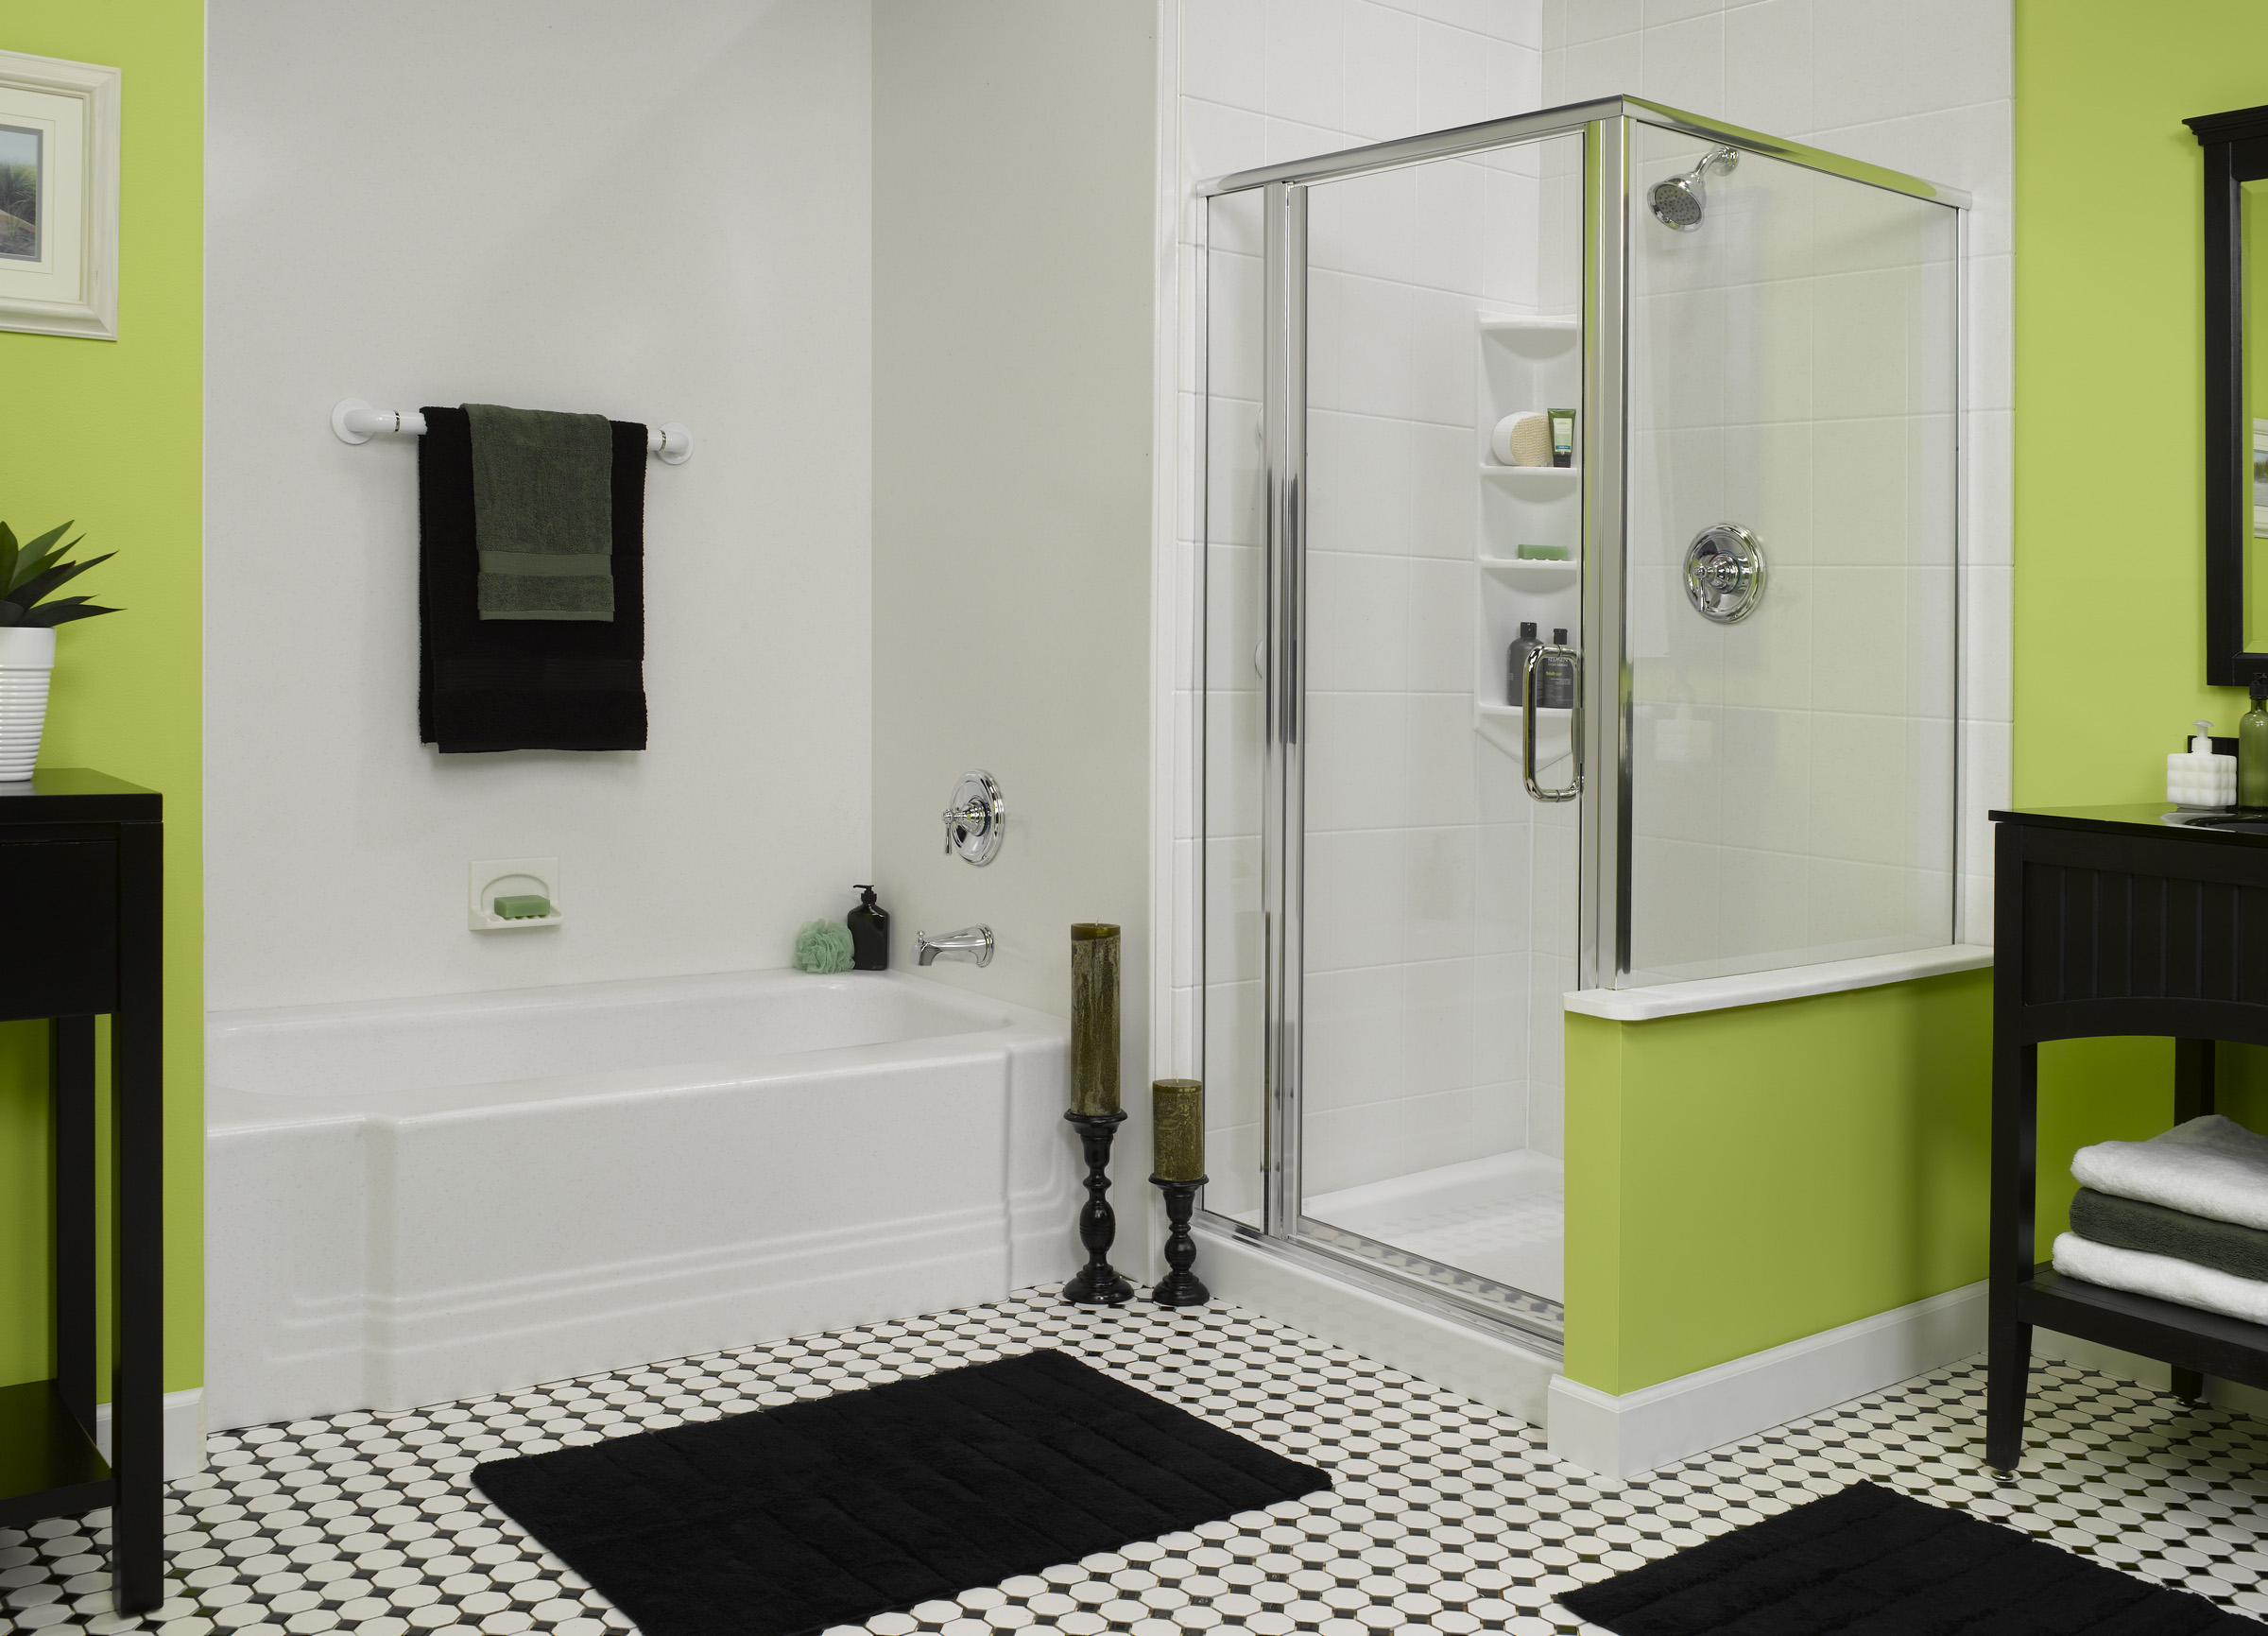 Bathroom Remodel Cost India average price of a bathroom remodel. full size of bathroom remodel